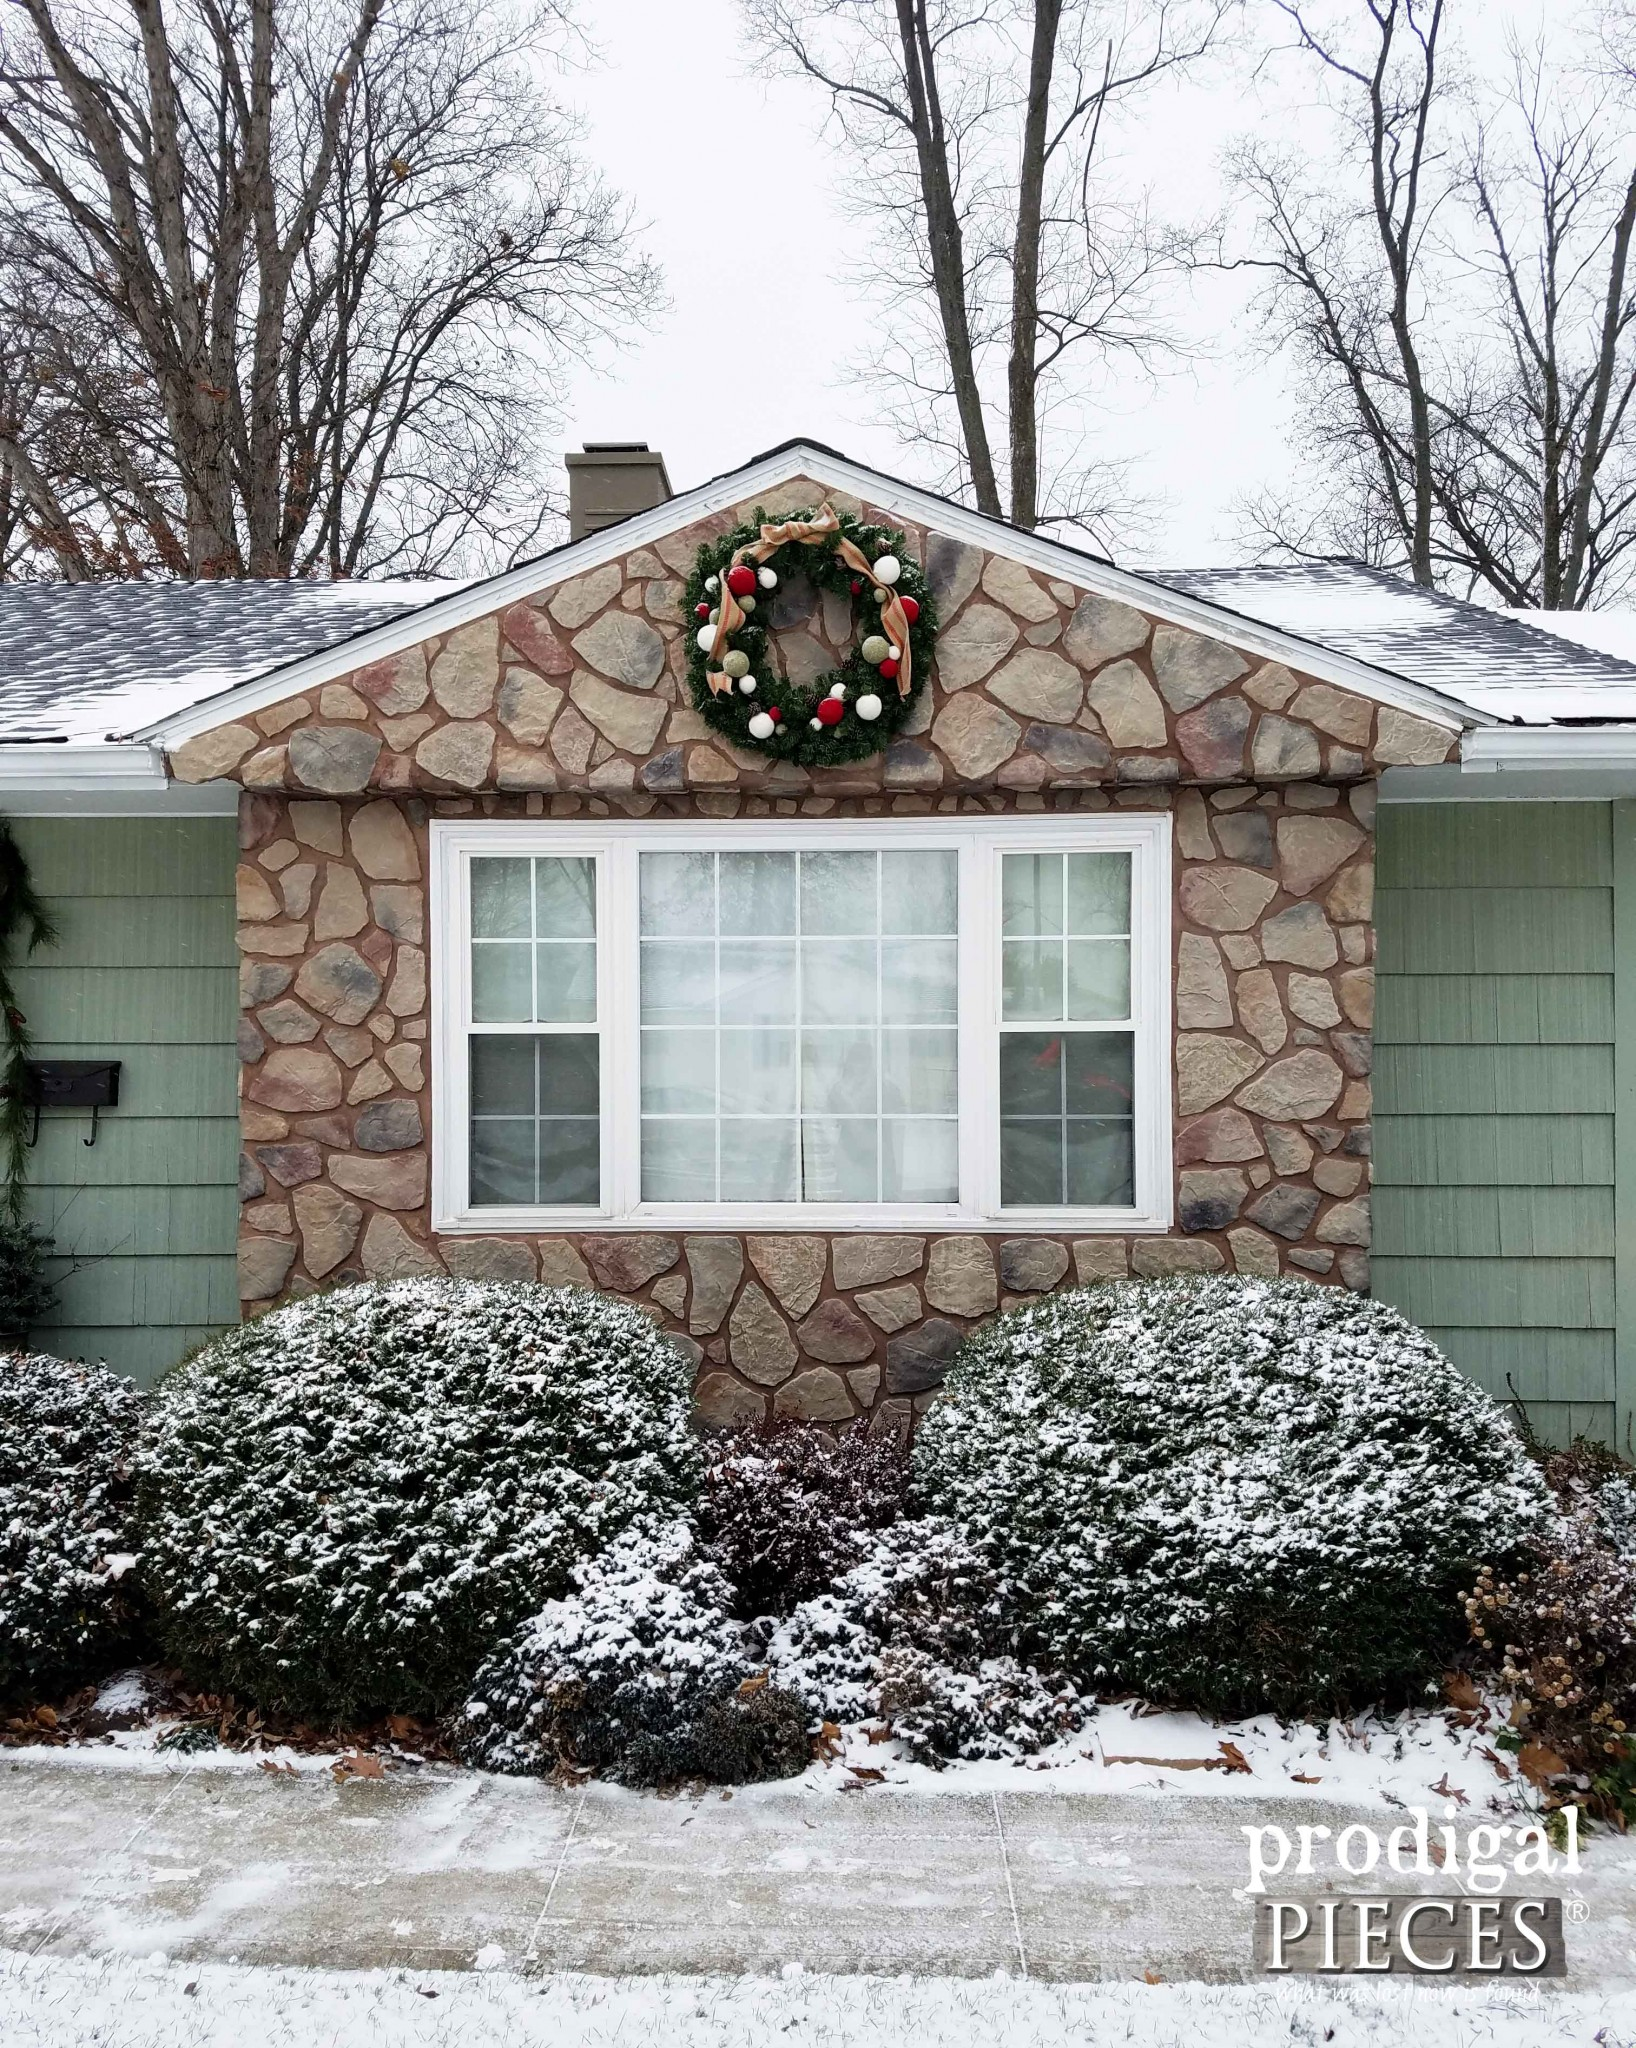 Winter Holiday Curb Appeal with Wreath on Stone by Prodigal Pieces | prodigalpieces.com